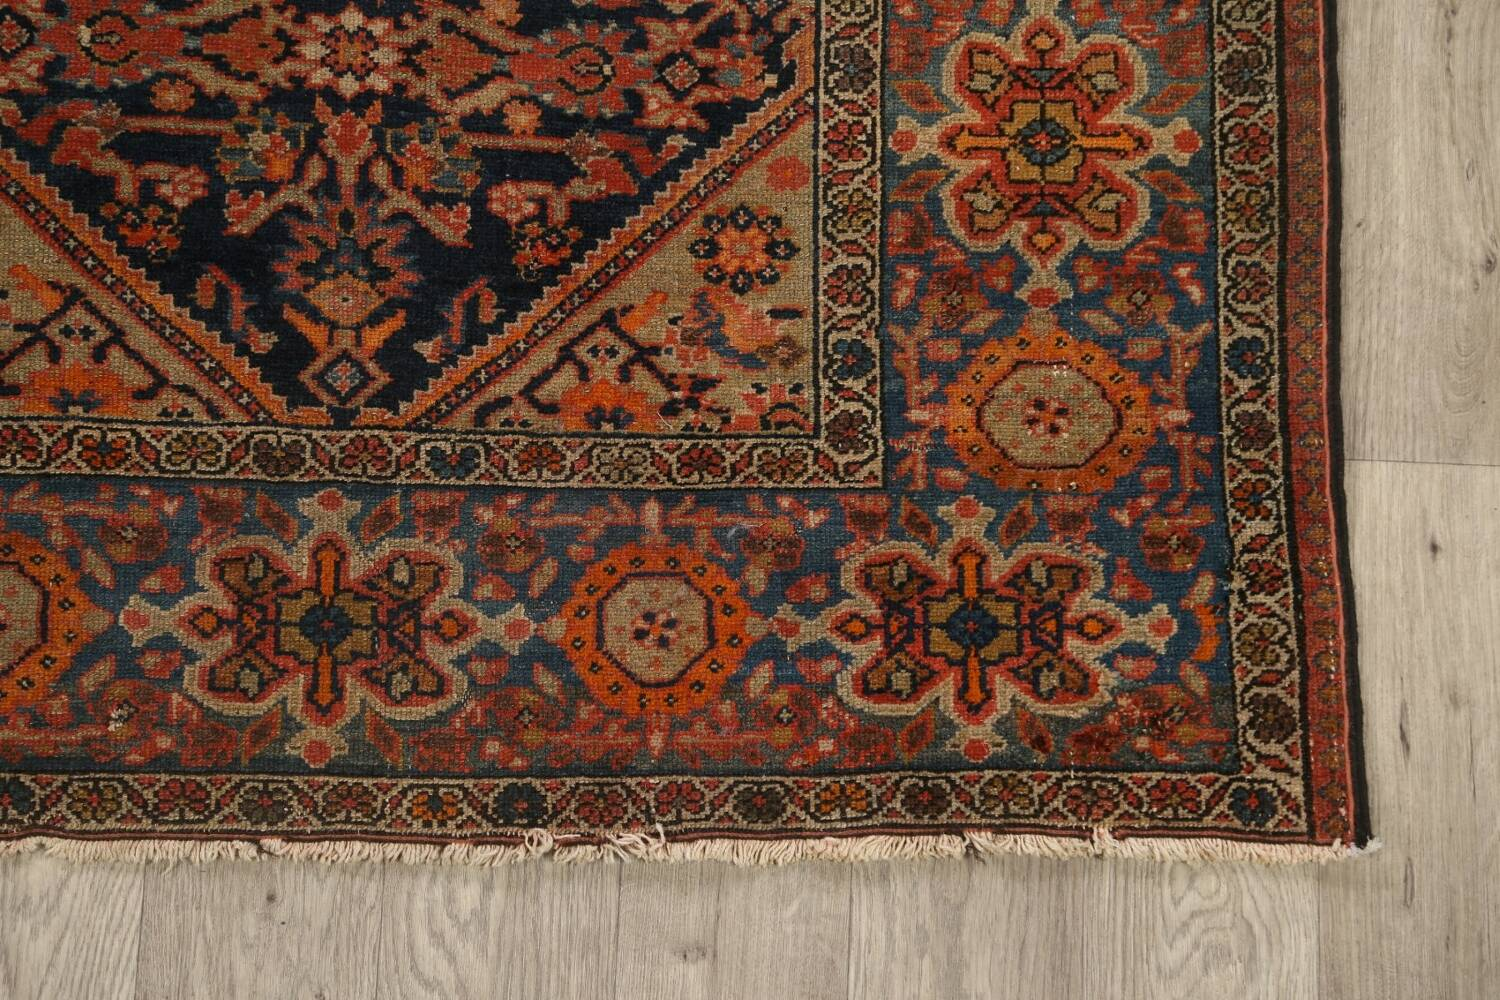 Pre-1900 Antique Vegetable Dye Malayer Persian Area Rug 4x6 image 5